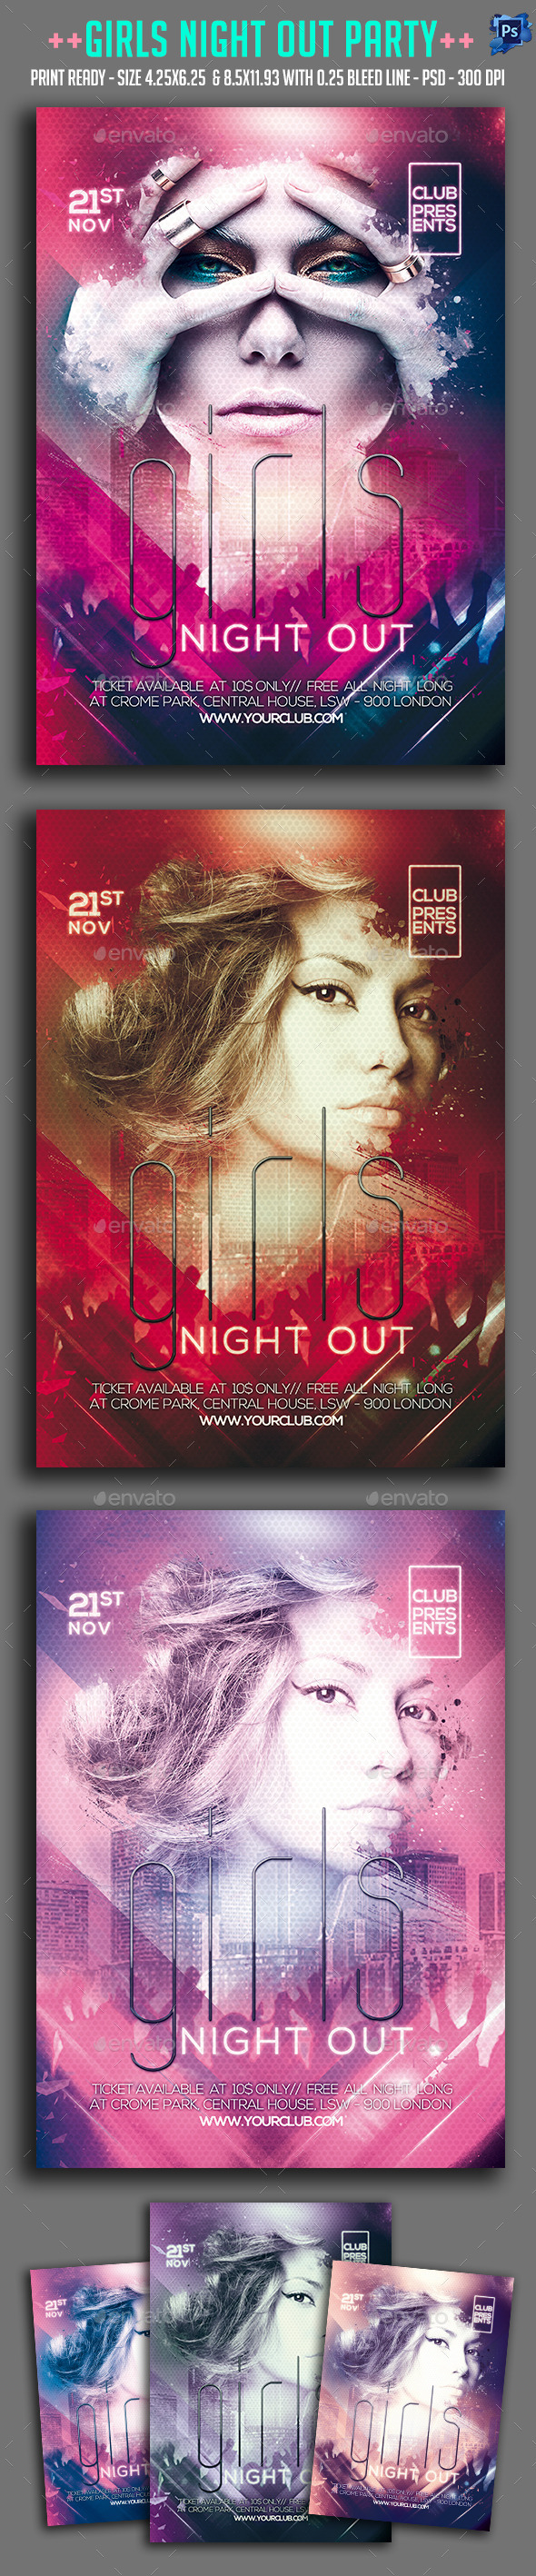 Girls Night Out Party Flyer Template Psd Promote Download Http